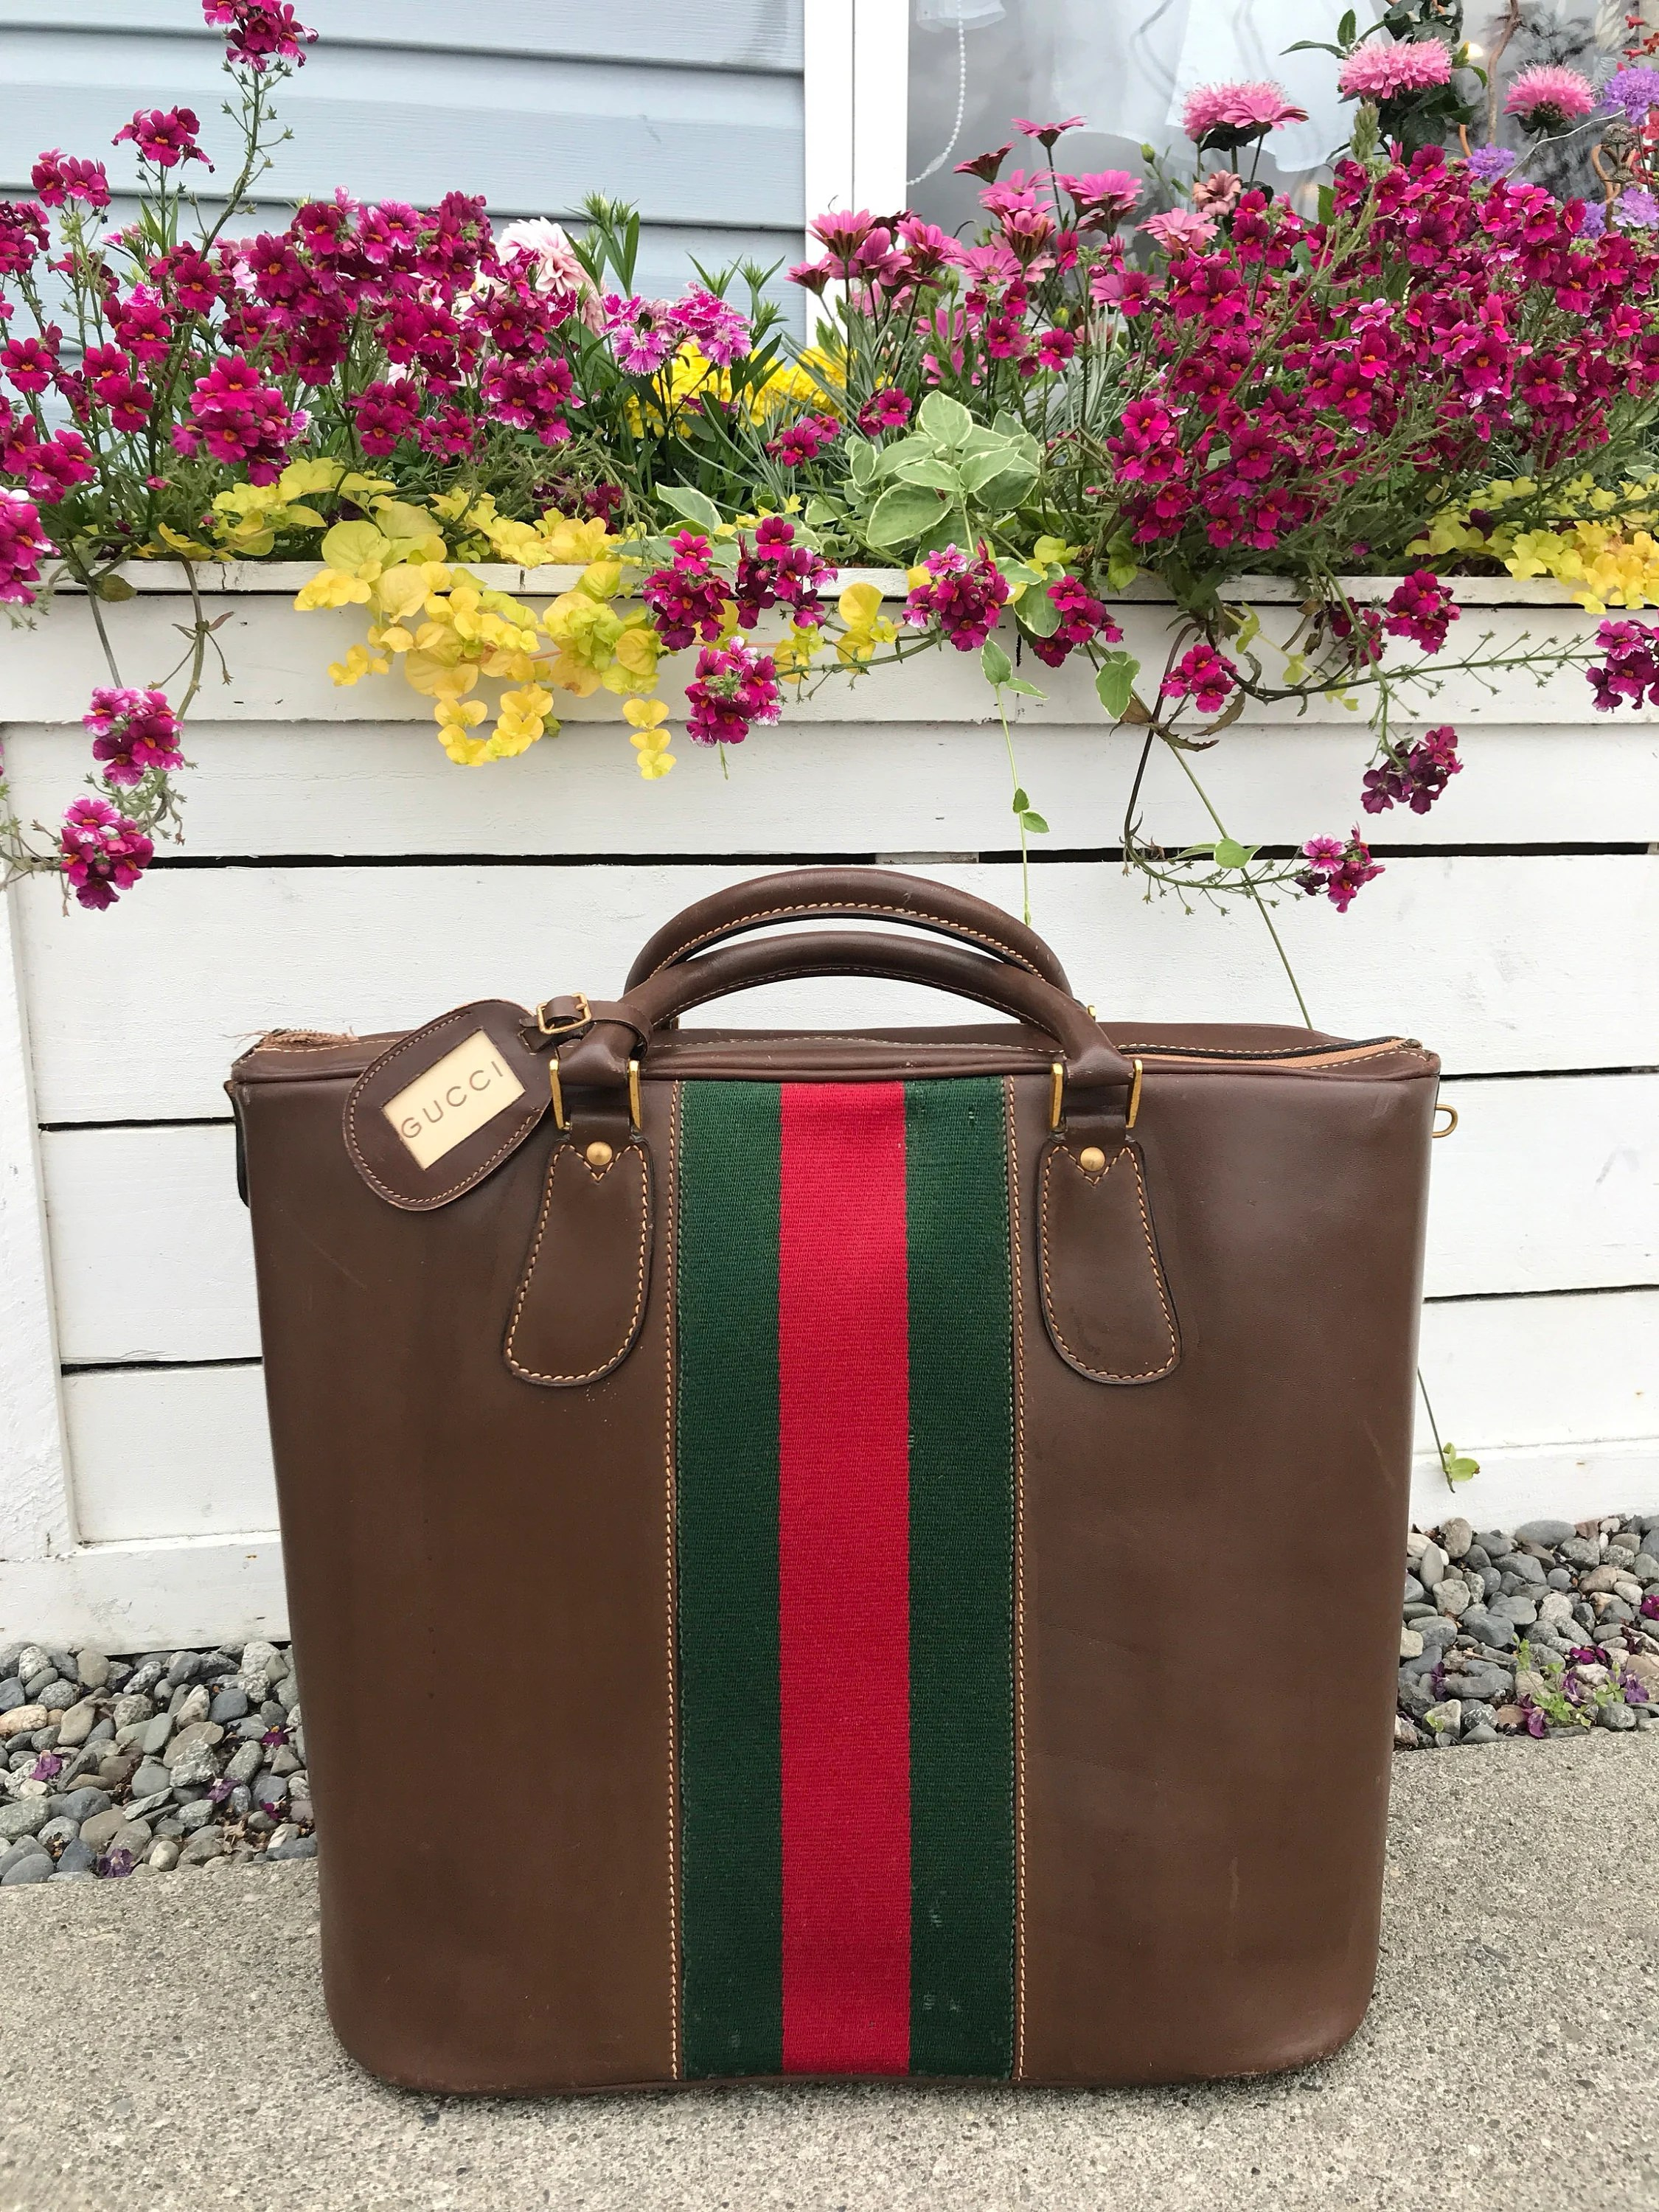 Etsy Vintage Gucci Vintage Gucci Champagne Wine Bag Luggage Gg Leather Bag